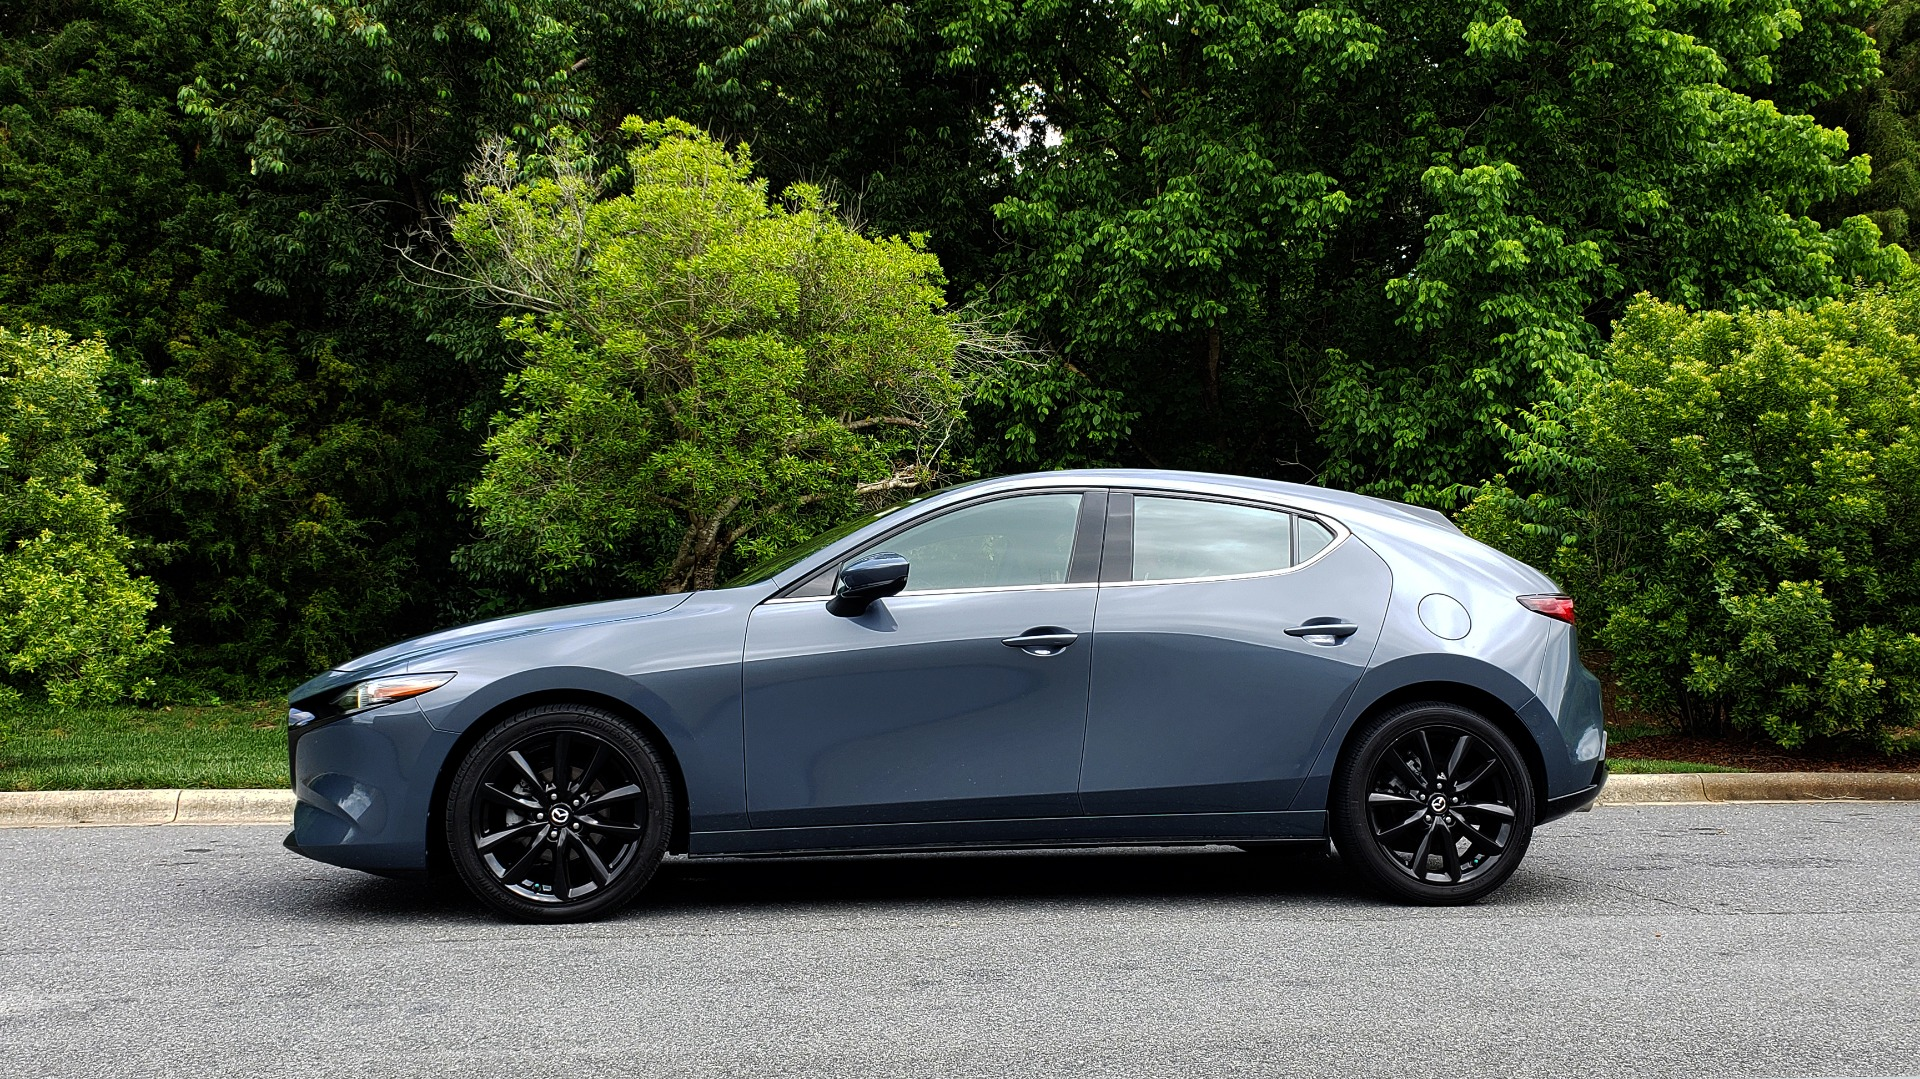 Used 2019 Mazda MAZDA3 HATCHBACK PREMIUM PKG / AUTO / 18IN BLACK ALLOY WHEELS / BOSE / LEATHER for sale Sold at Formula Imports in Charlotte NC 28227 2